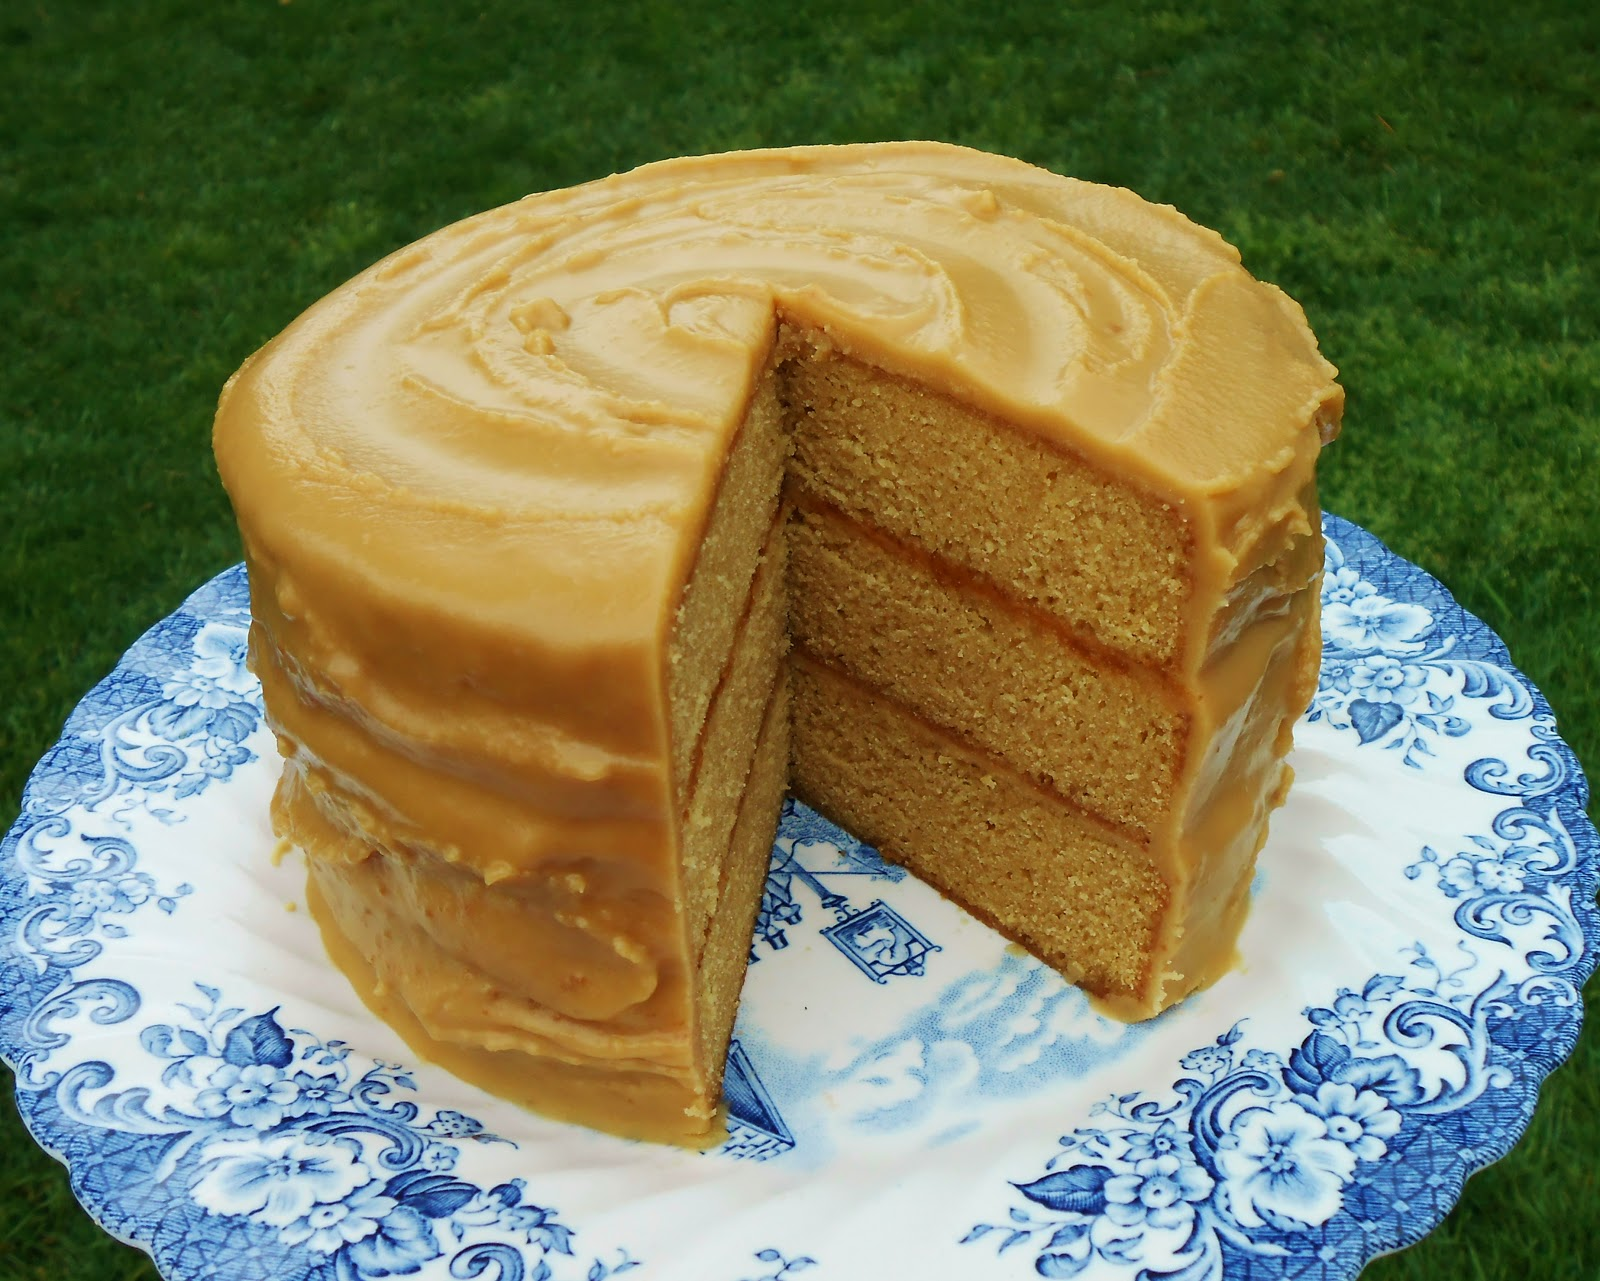 Recipe to make caramel cake